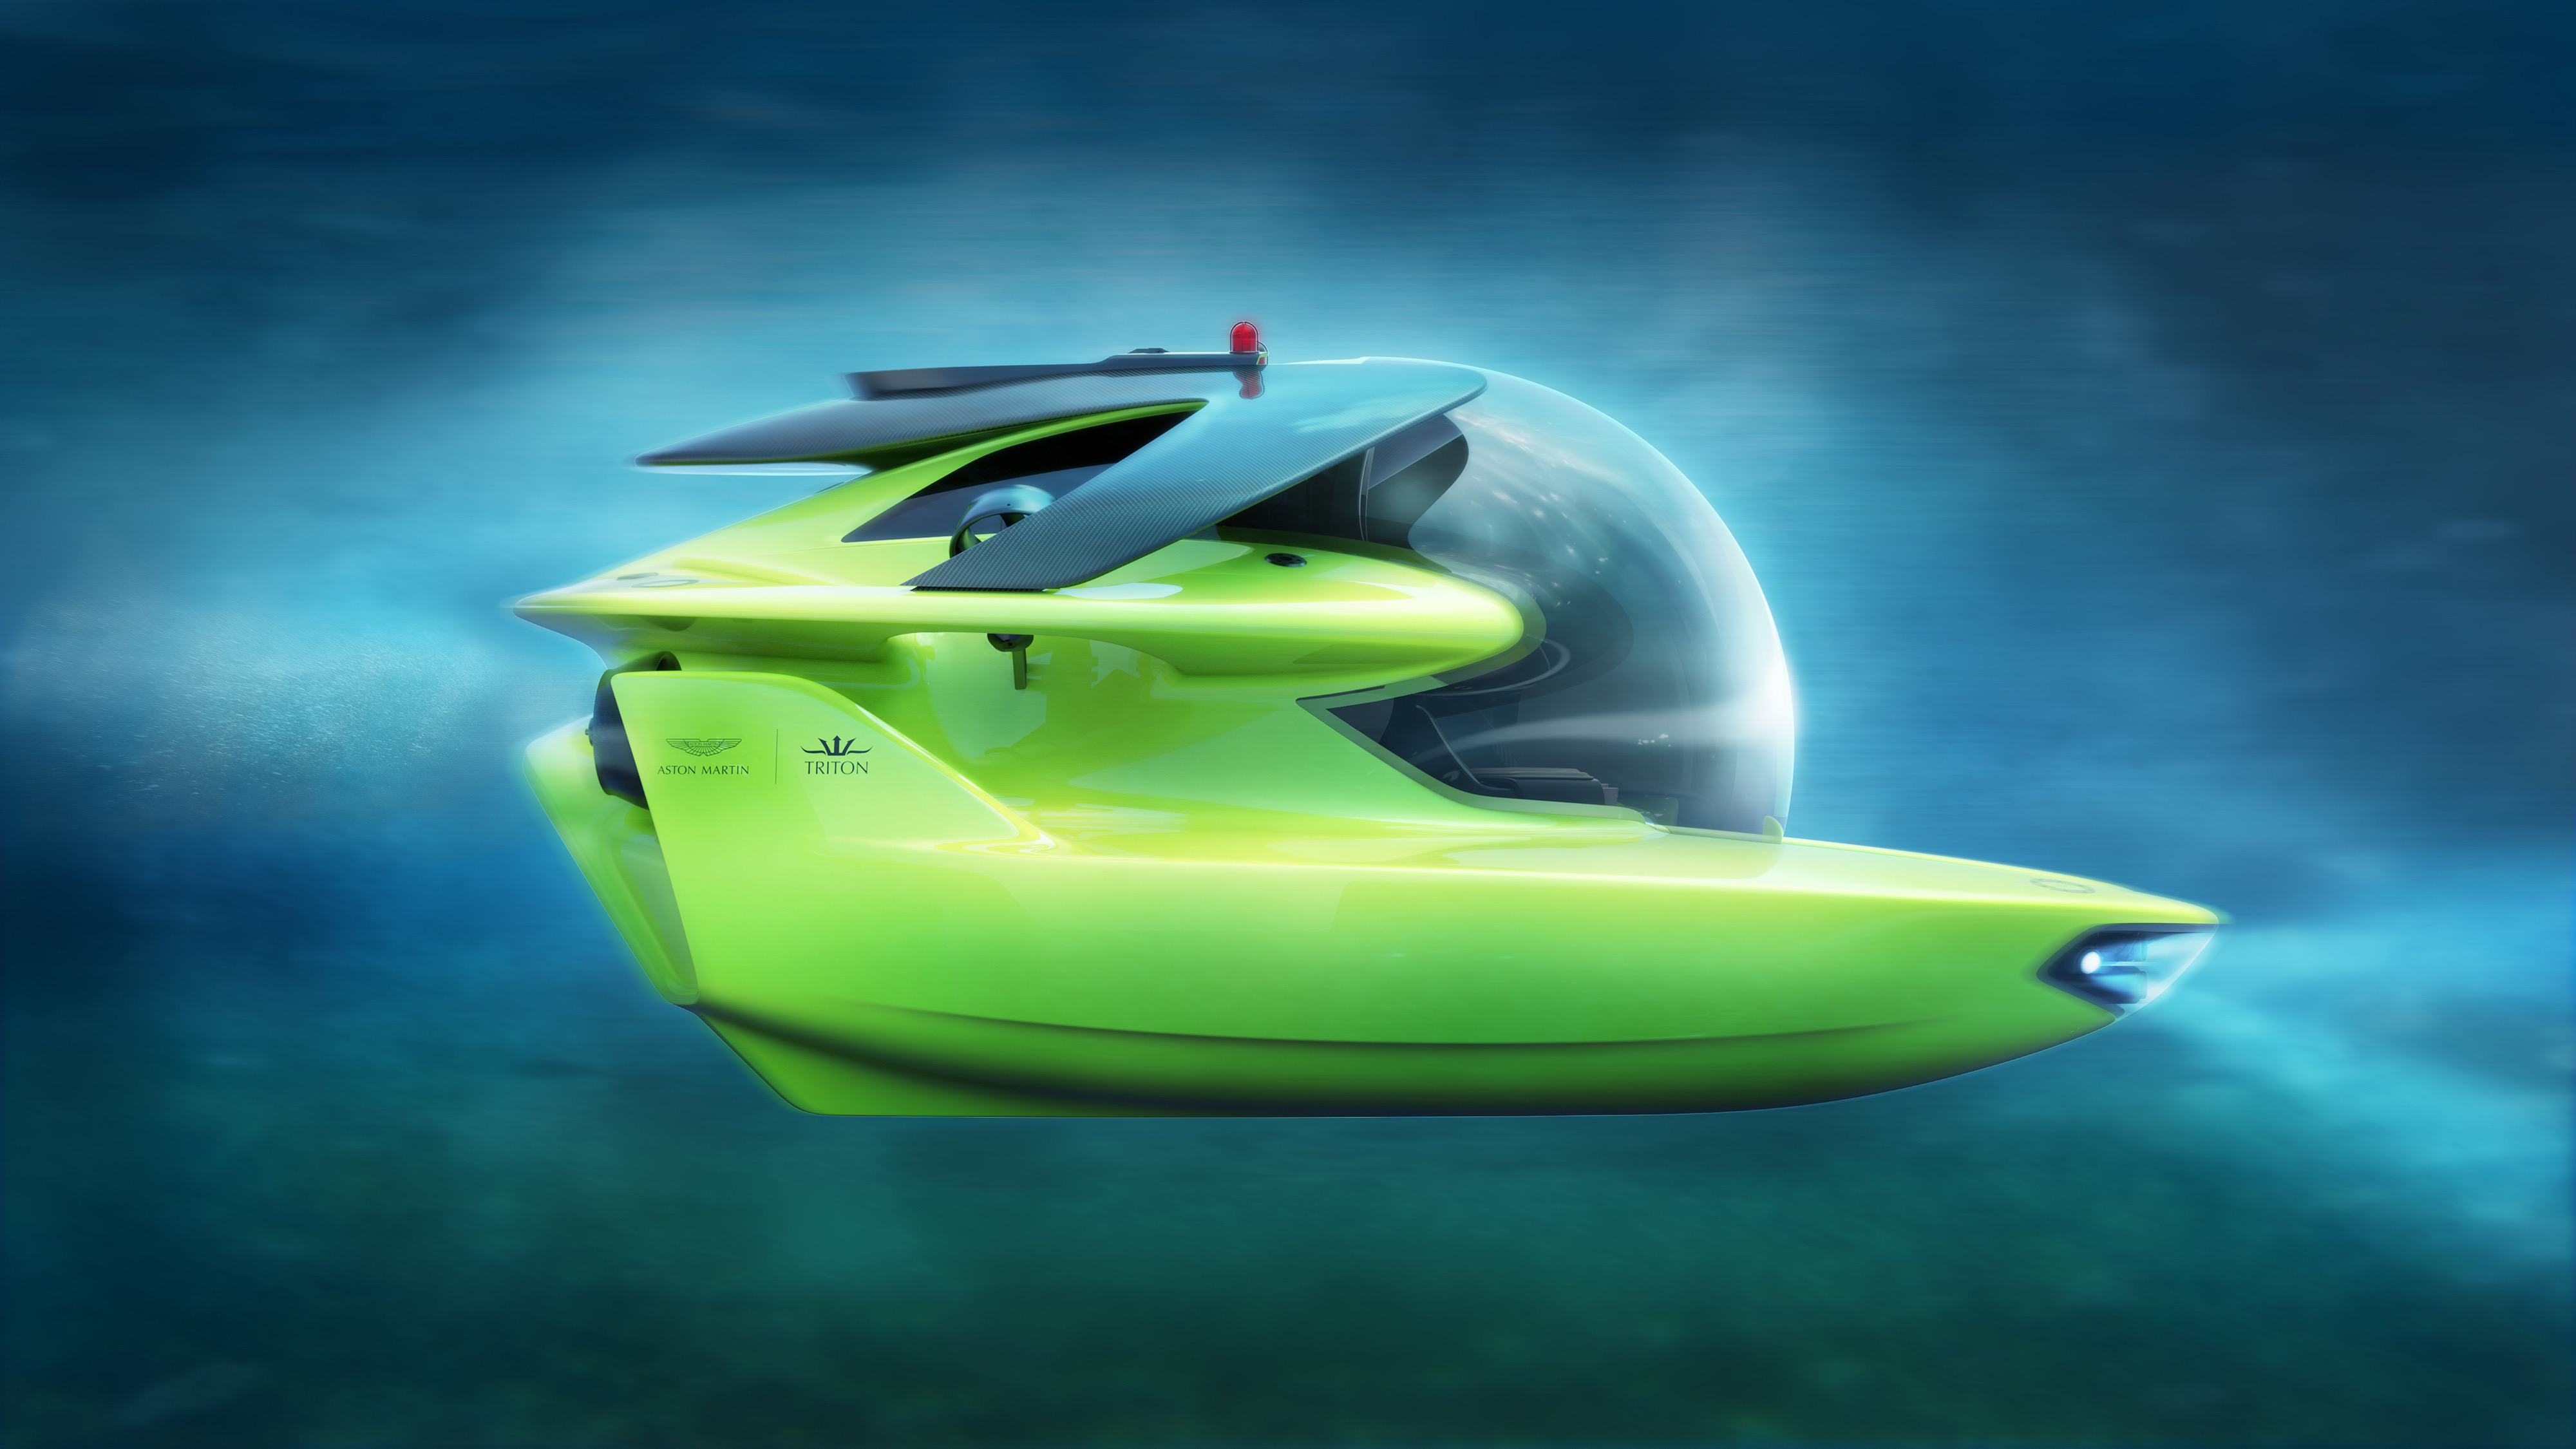 Submercible, Q trumped: Aston Martin and partner set production of three-person submersible, ClassicCars.com Journal